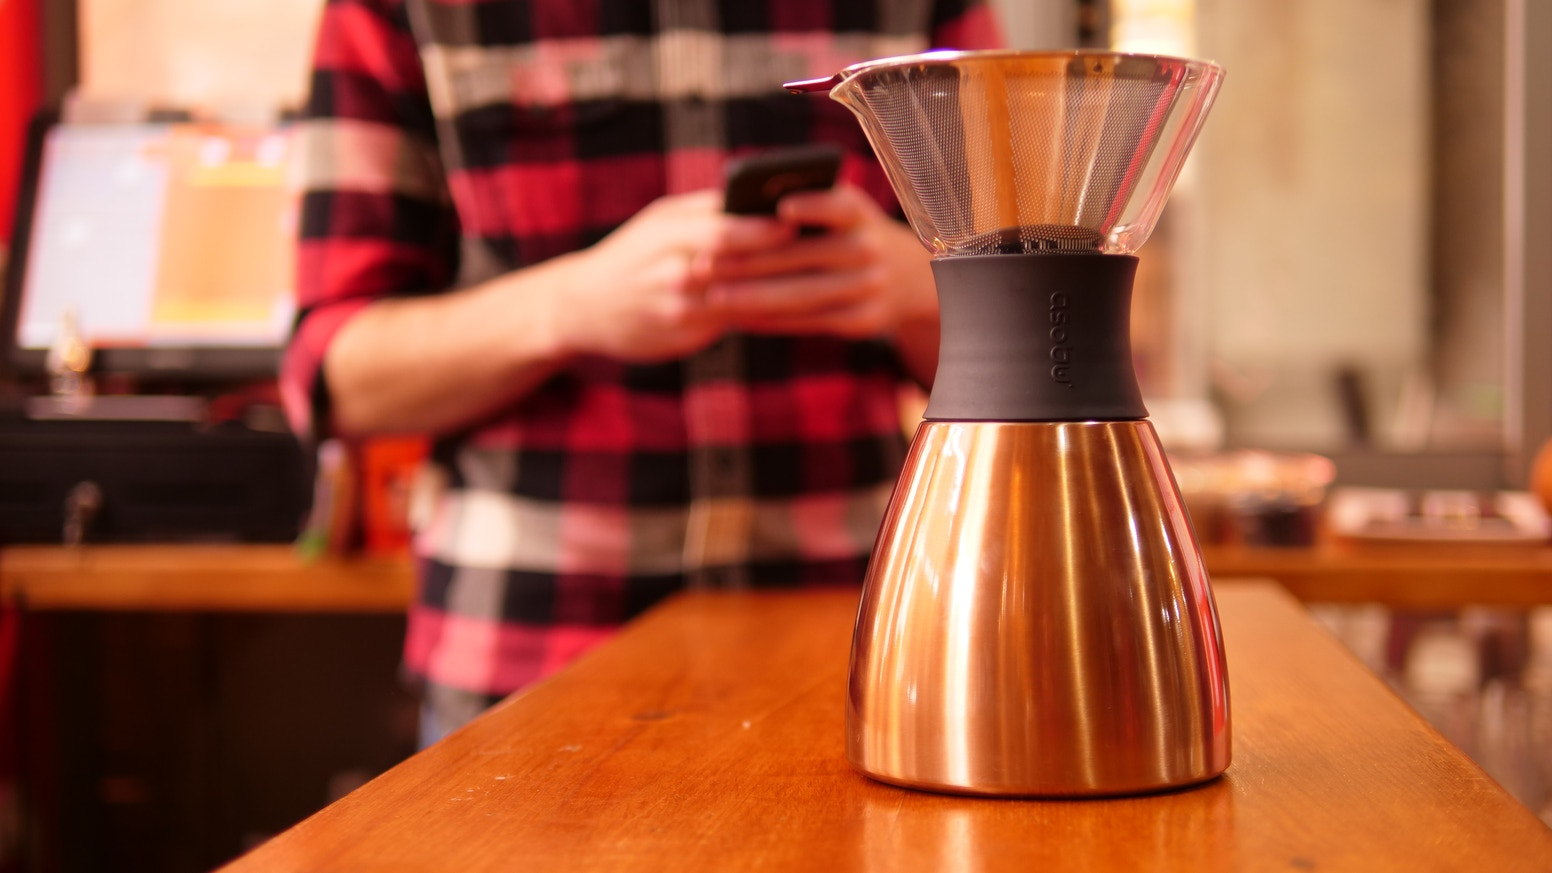 A fusion of classic style and modern technology that creates the best tasting coffee that can stay Hot and Fresh for 12 Hours!